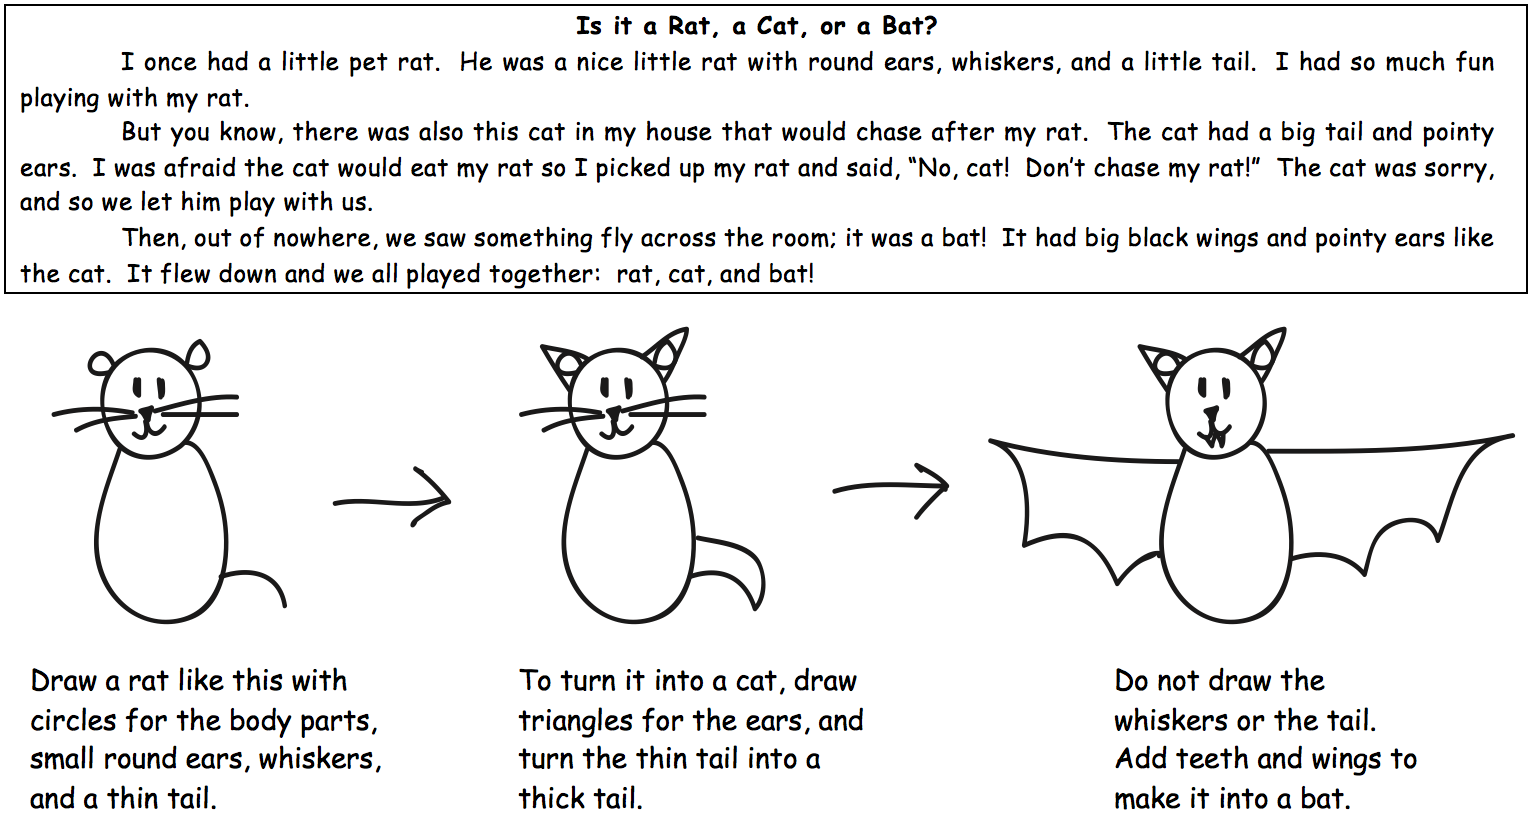 rat-cat-bat-story-and-drawing-instructions